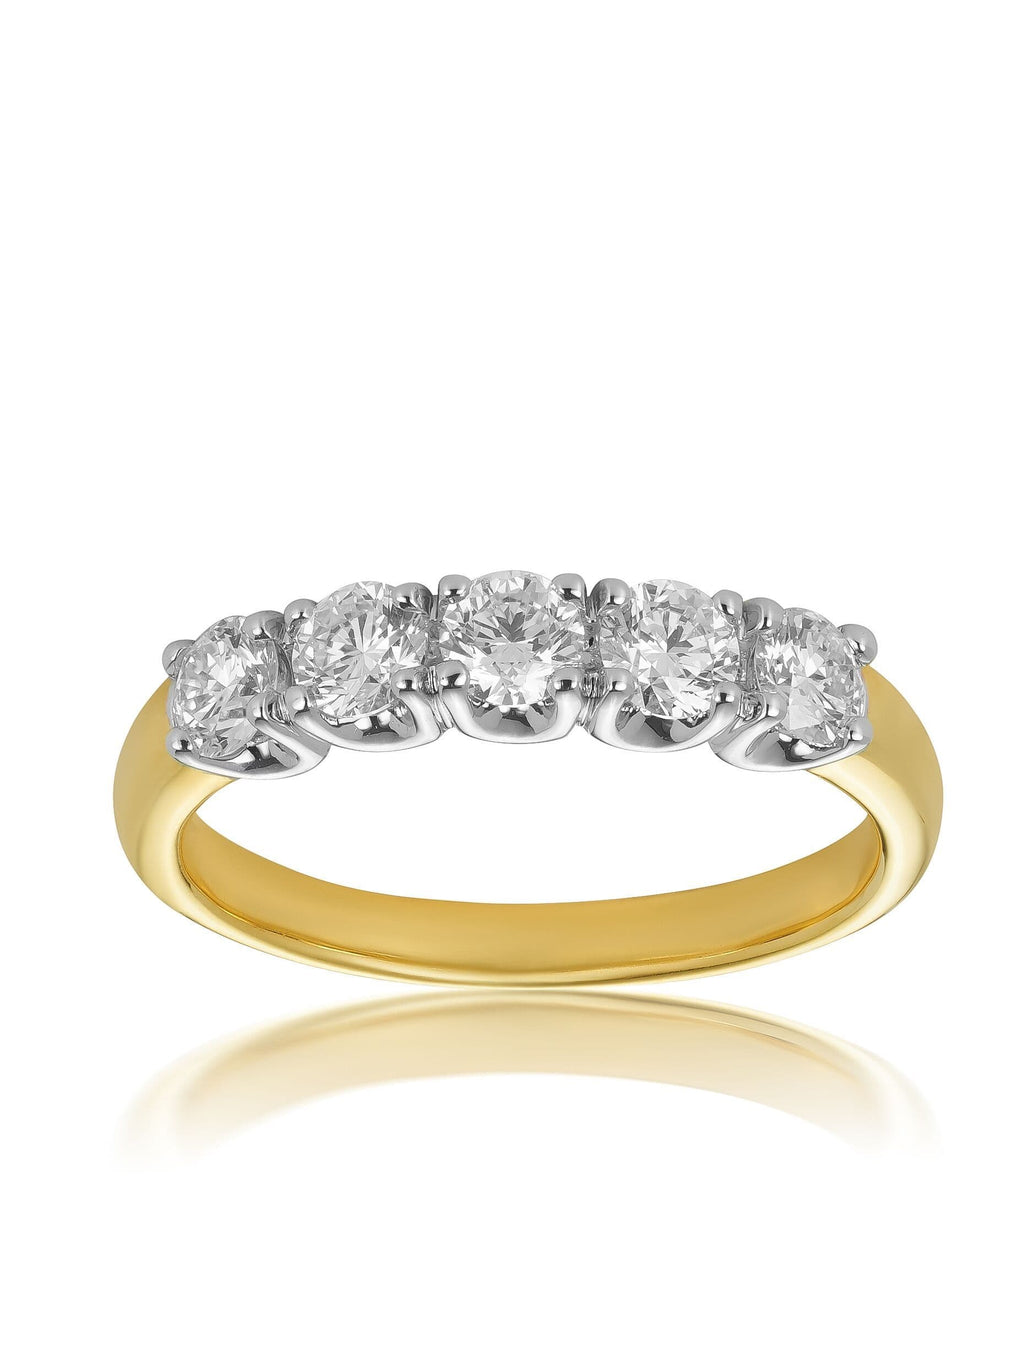 Claw Set Round Brilliant 5-Stone Anniversary Ring